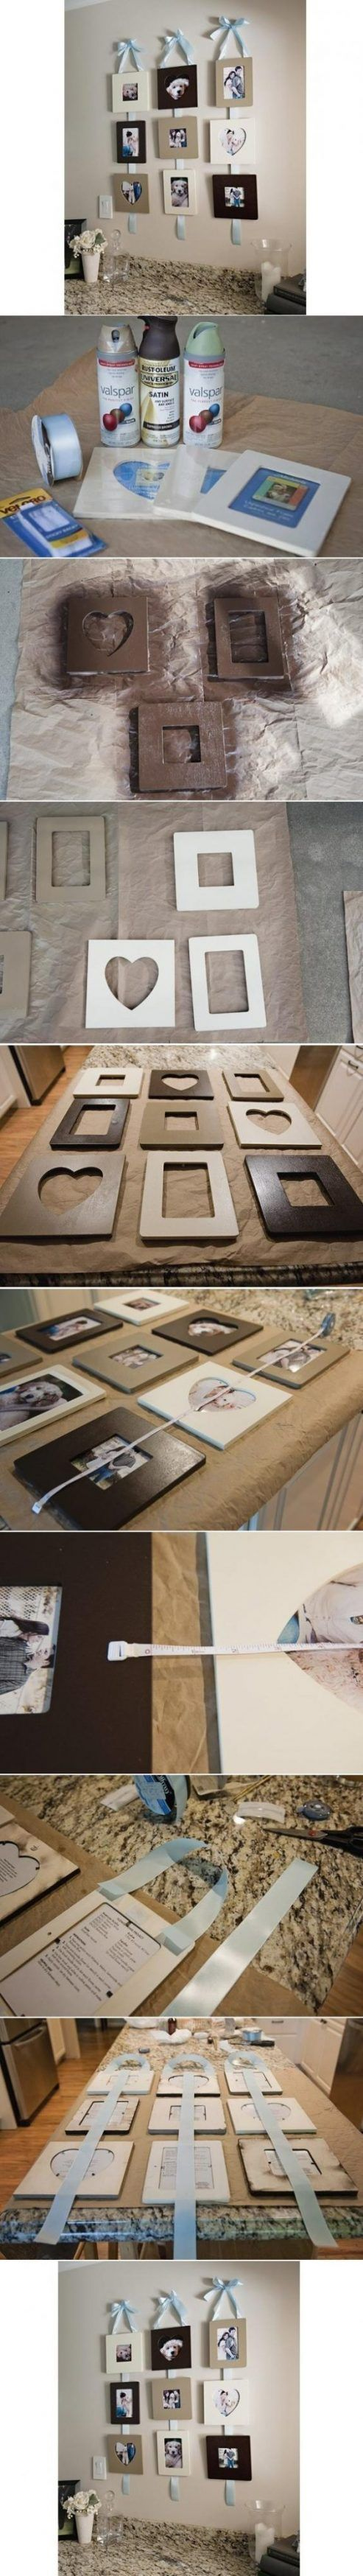 Ideas para colocar fotos de manera original | Pinterest | Originales ...